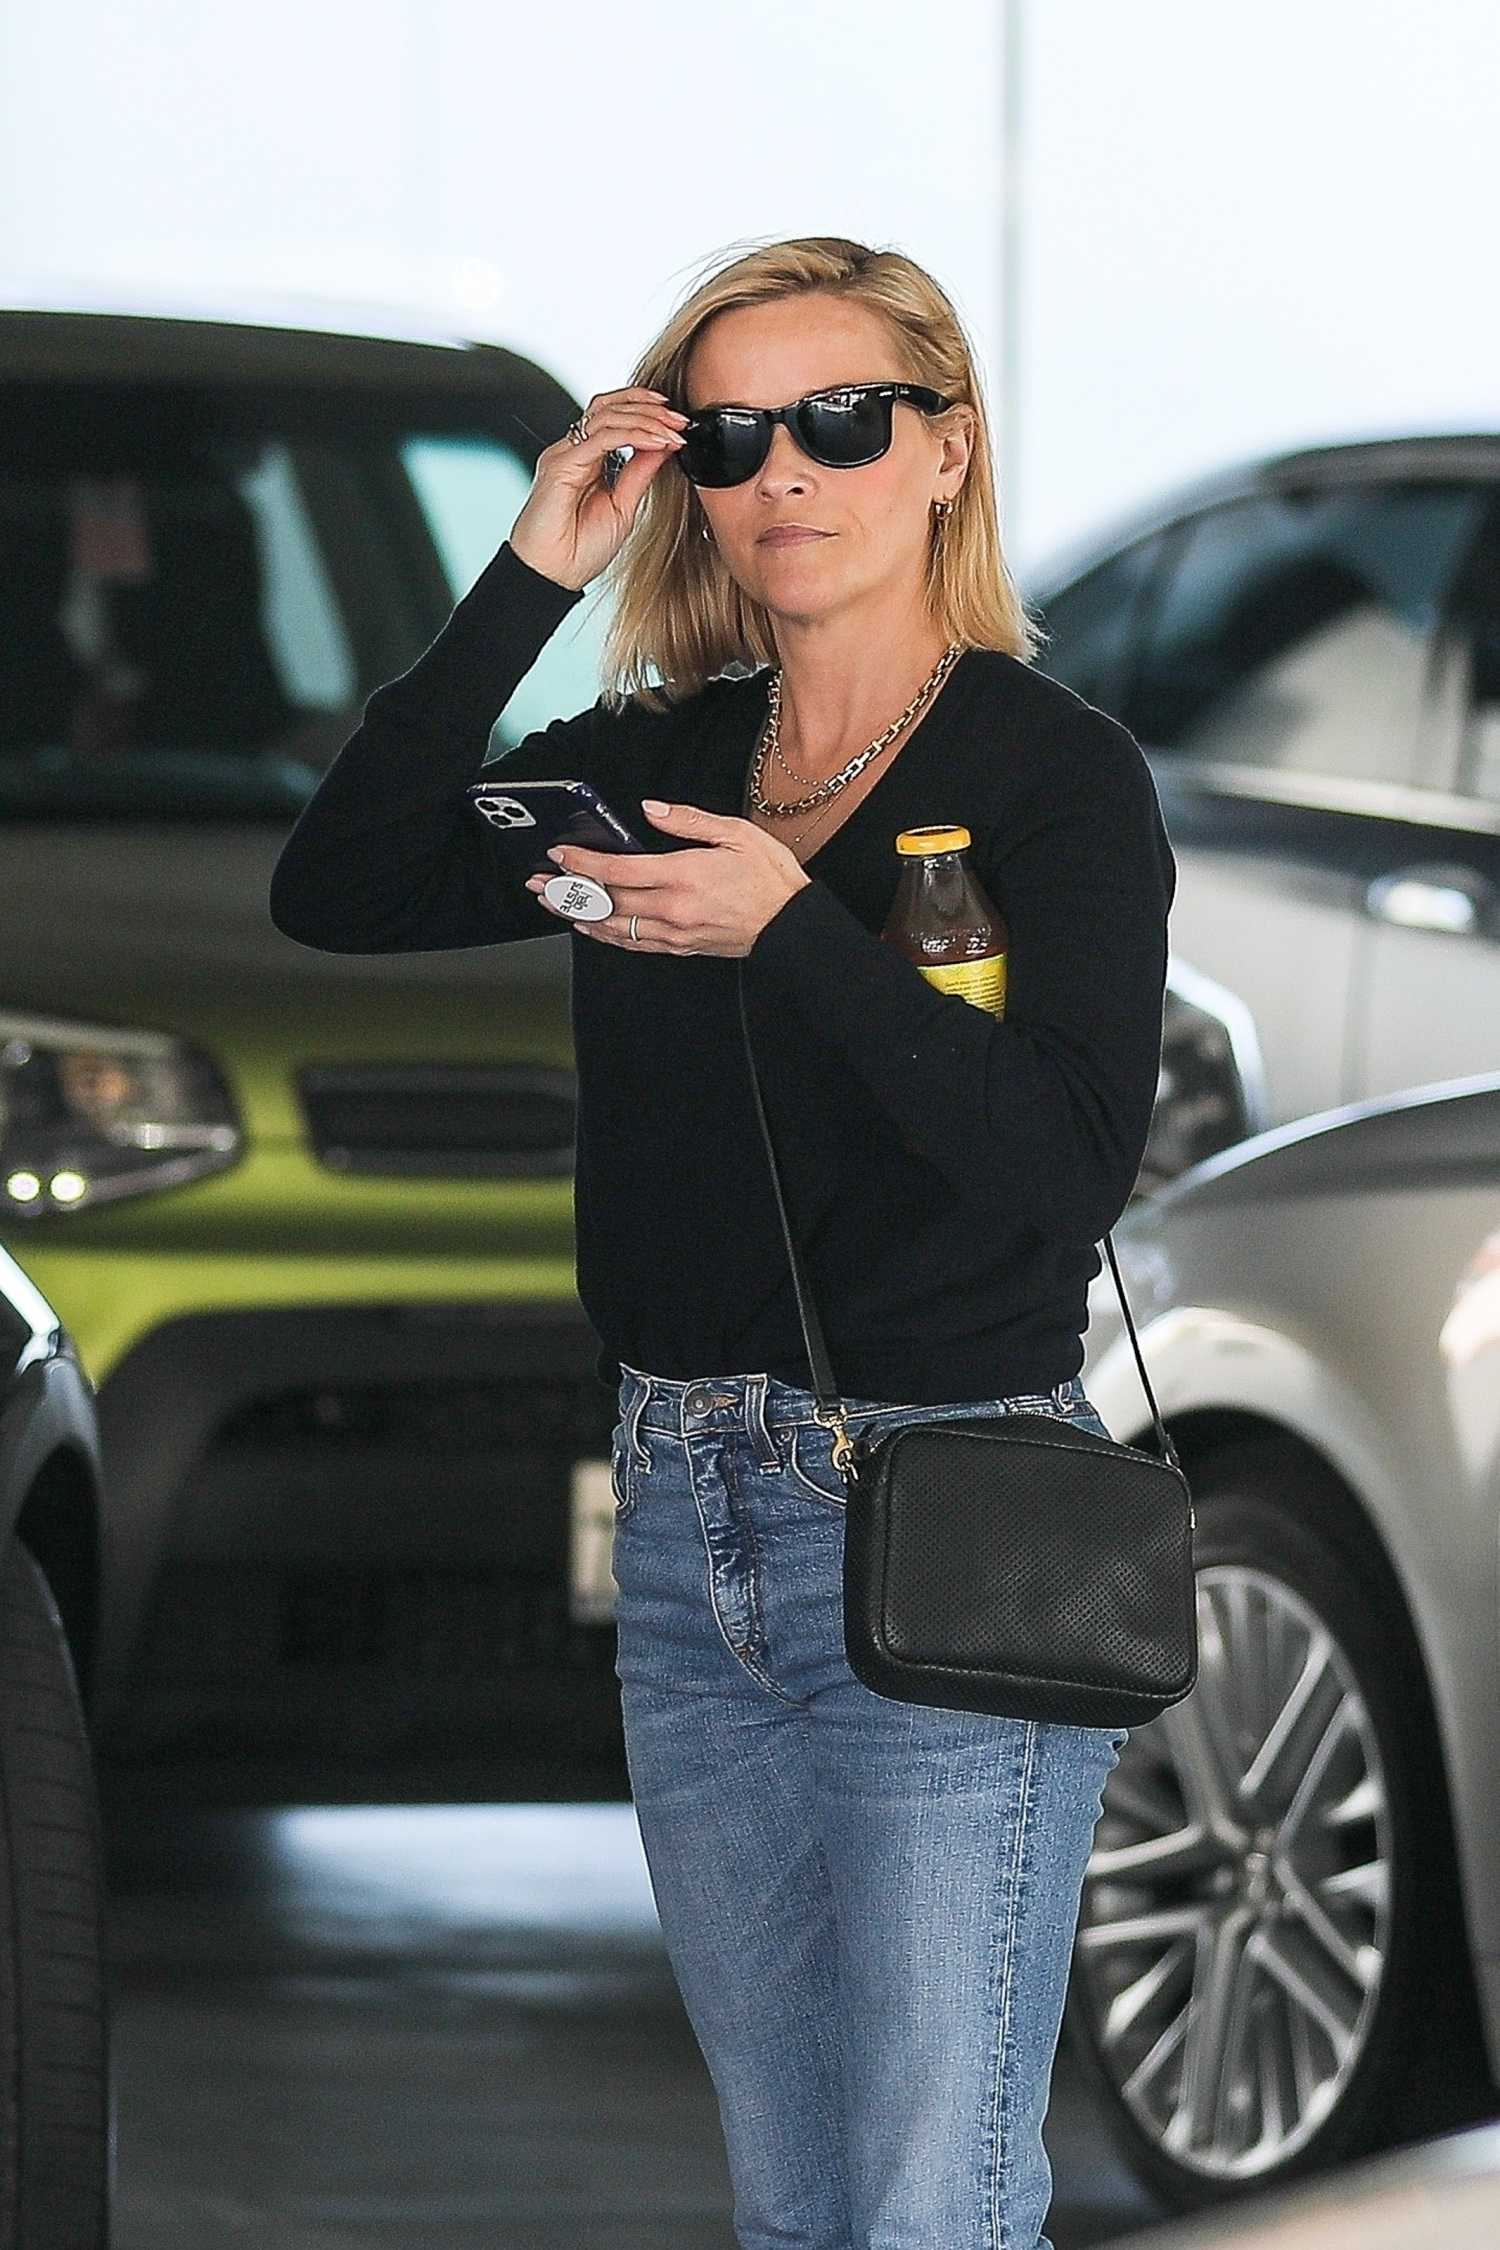 Reese Witherspoon In A Blue Jeans Arrives To A Business